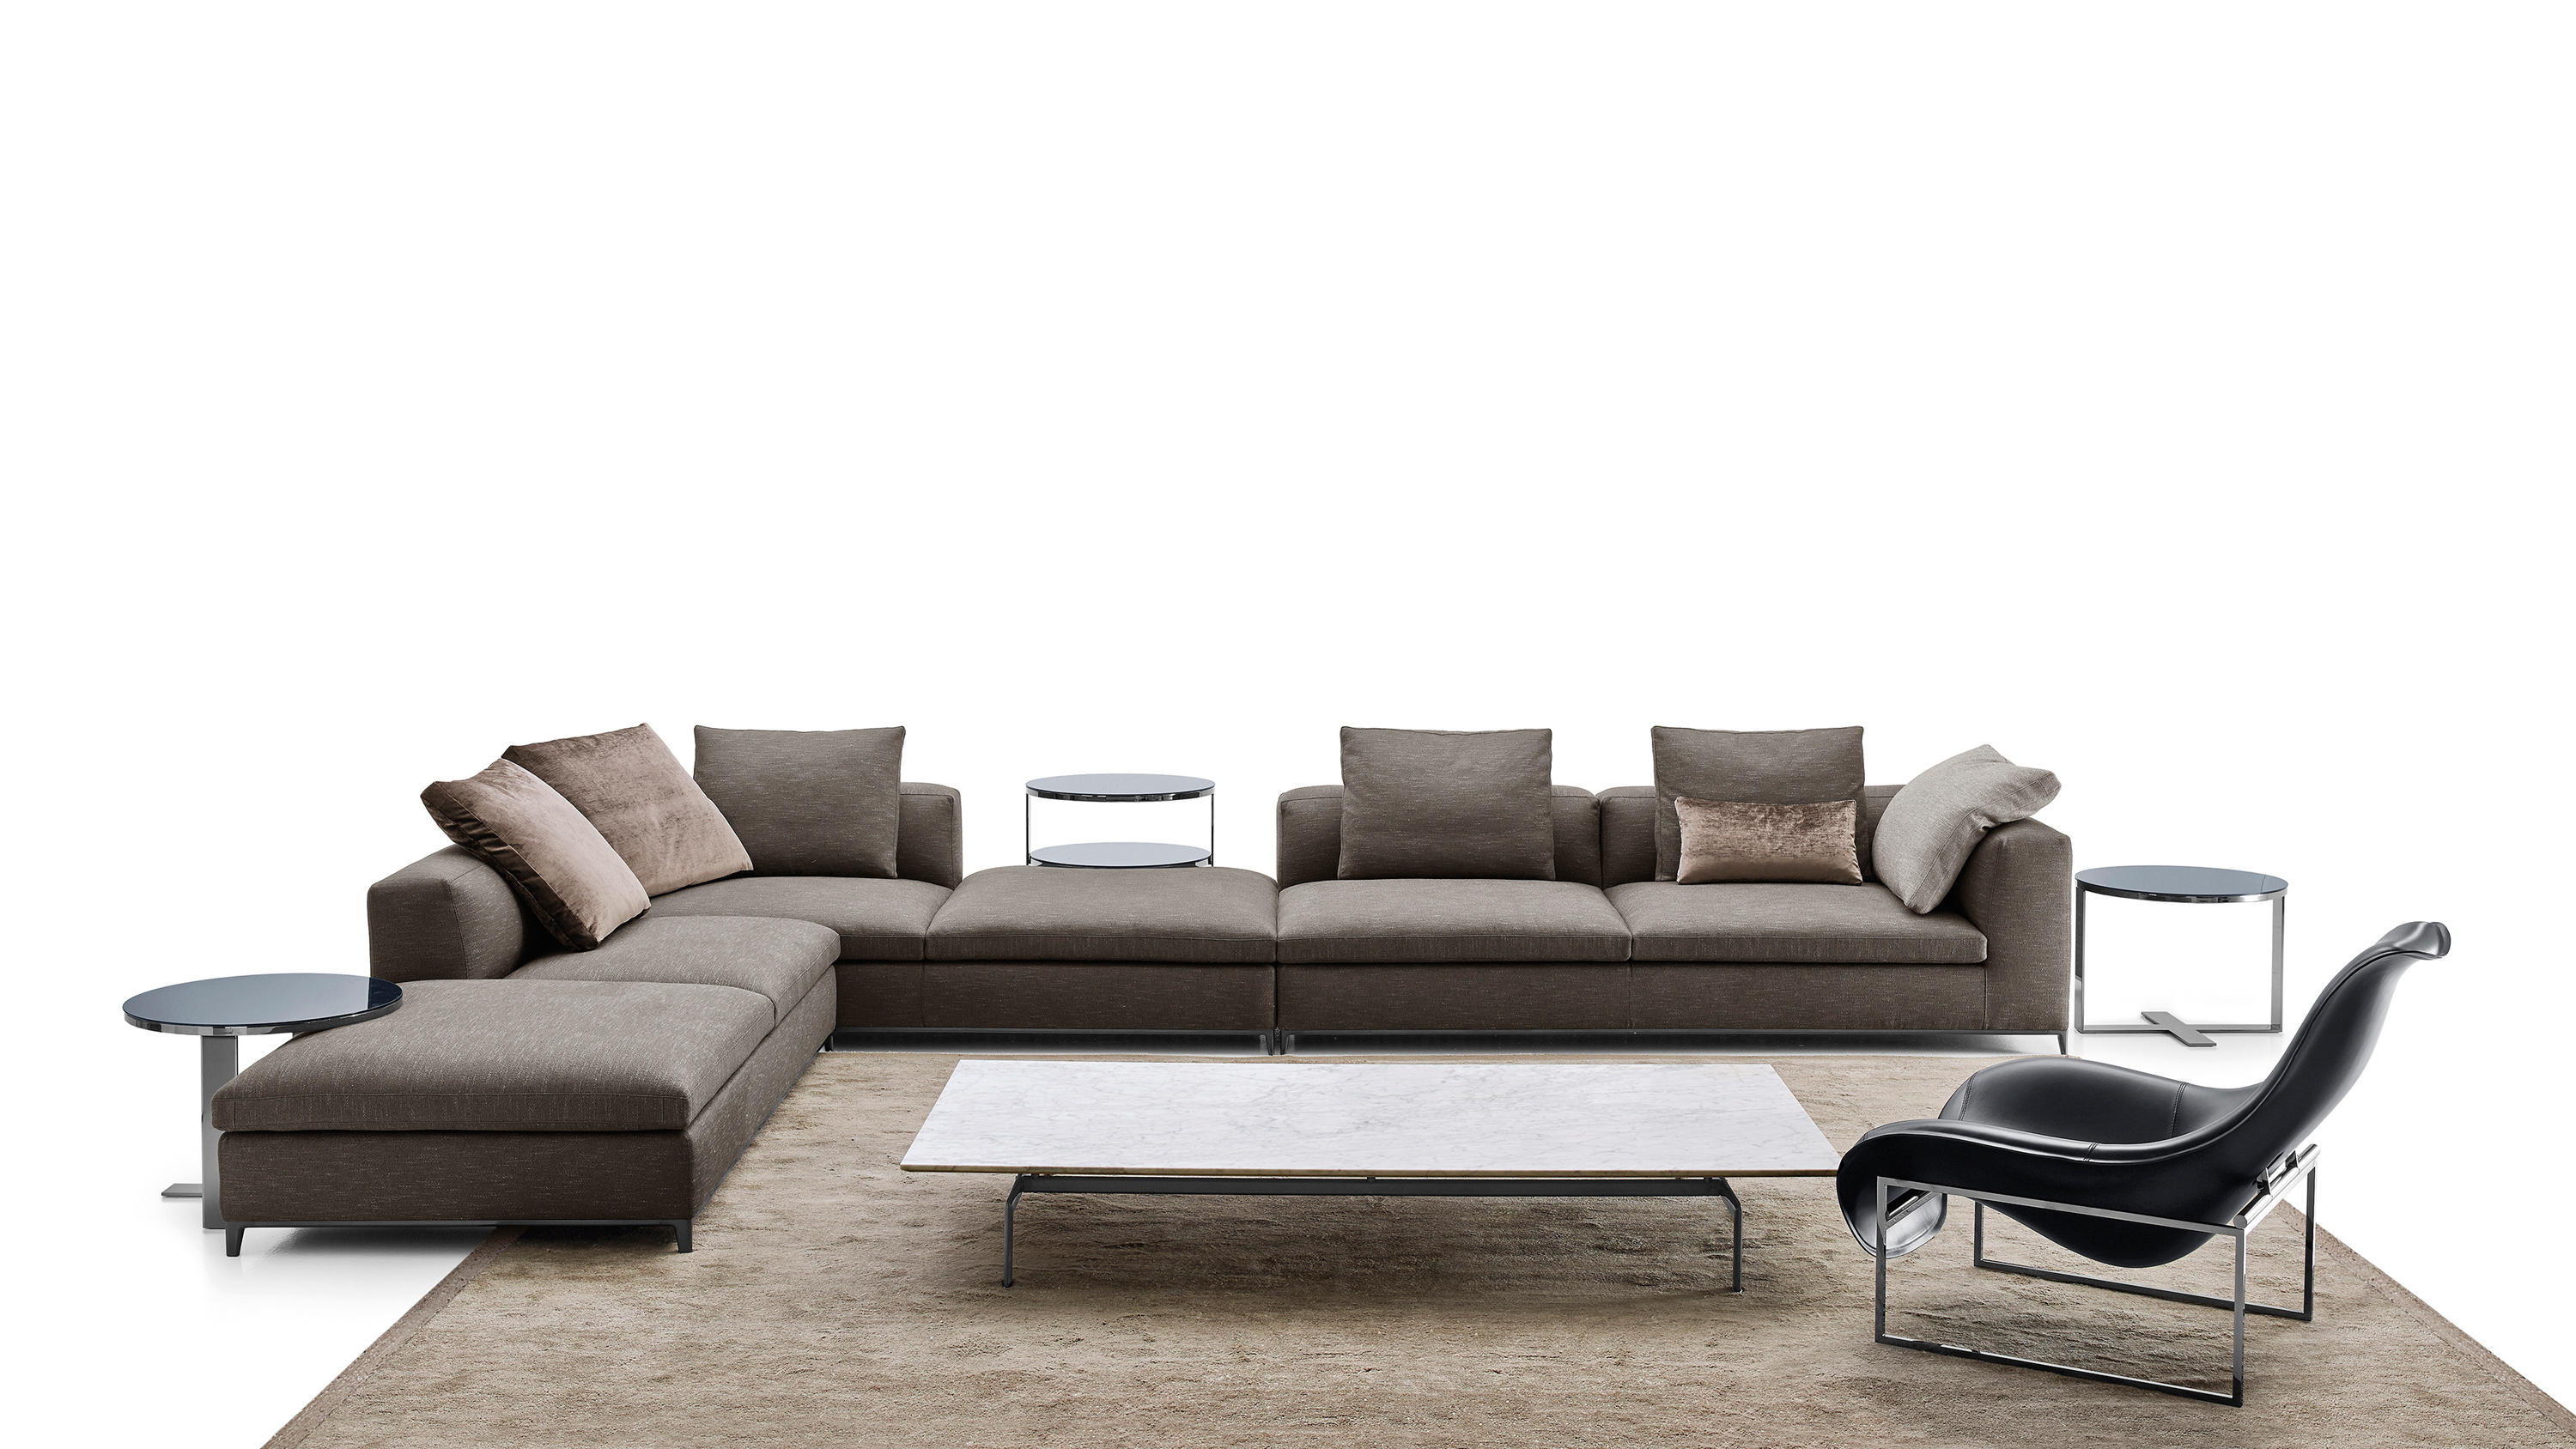 Arti Modular B And B Sofa Tufty Too Le Belle Arti Thesofa